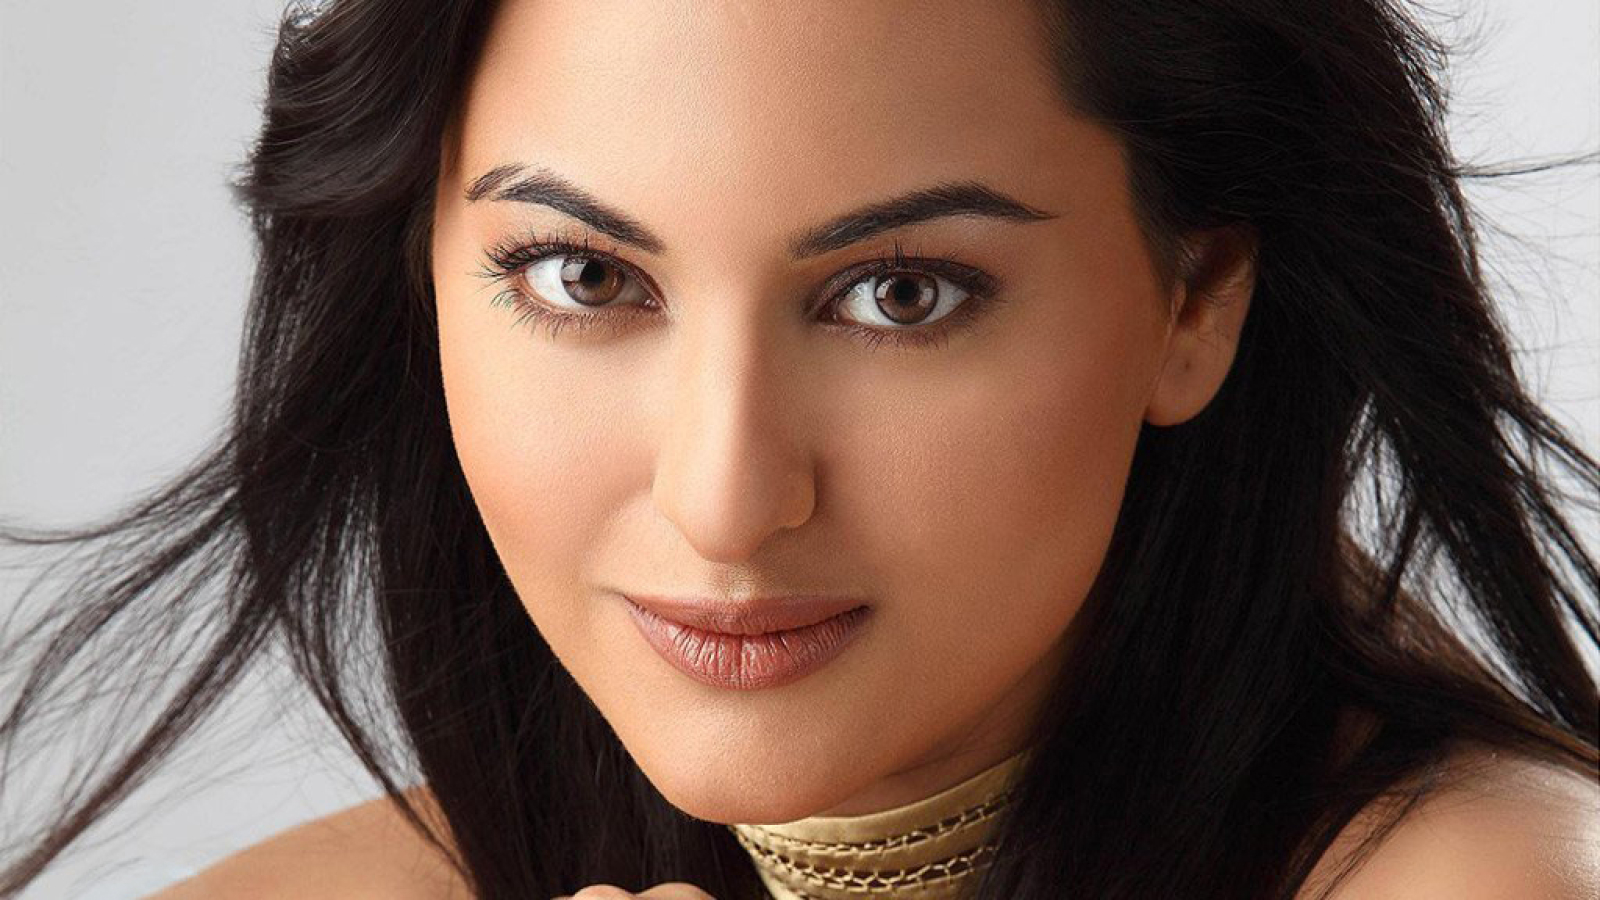 Sonakshi Sinha Close Up Photoshoot, HD Wallpaper